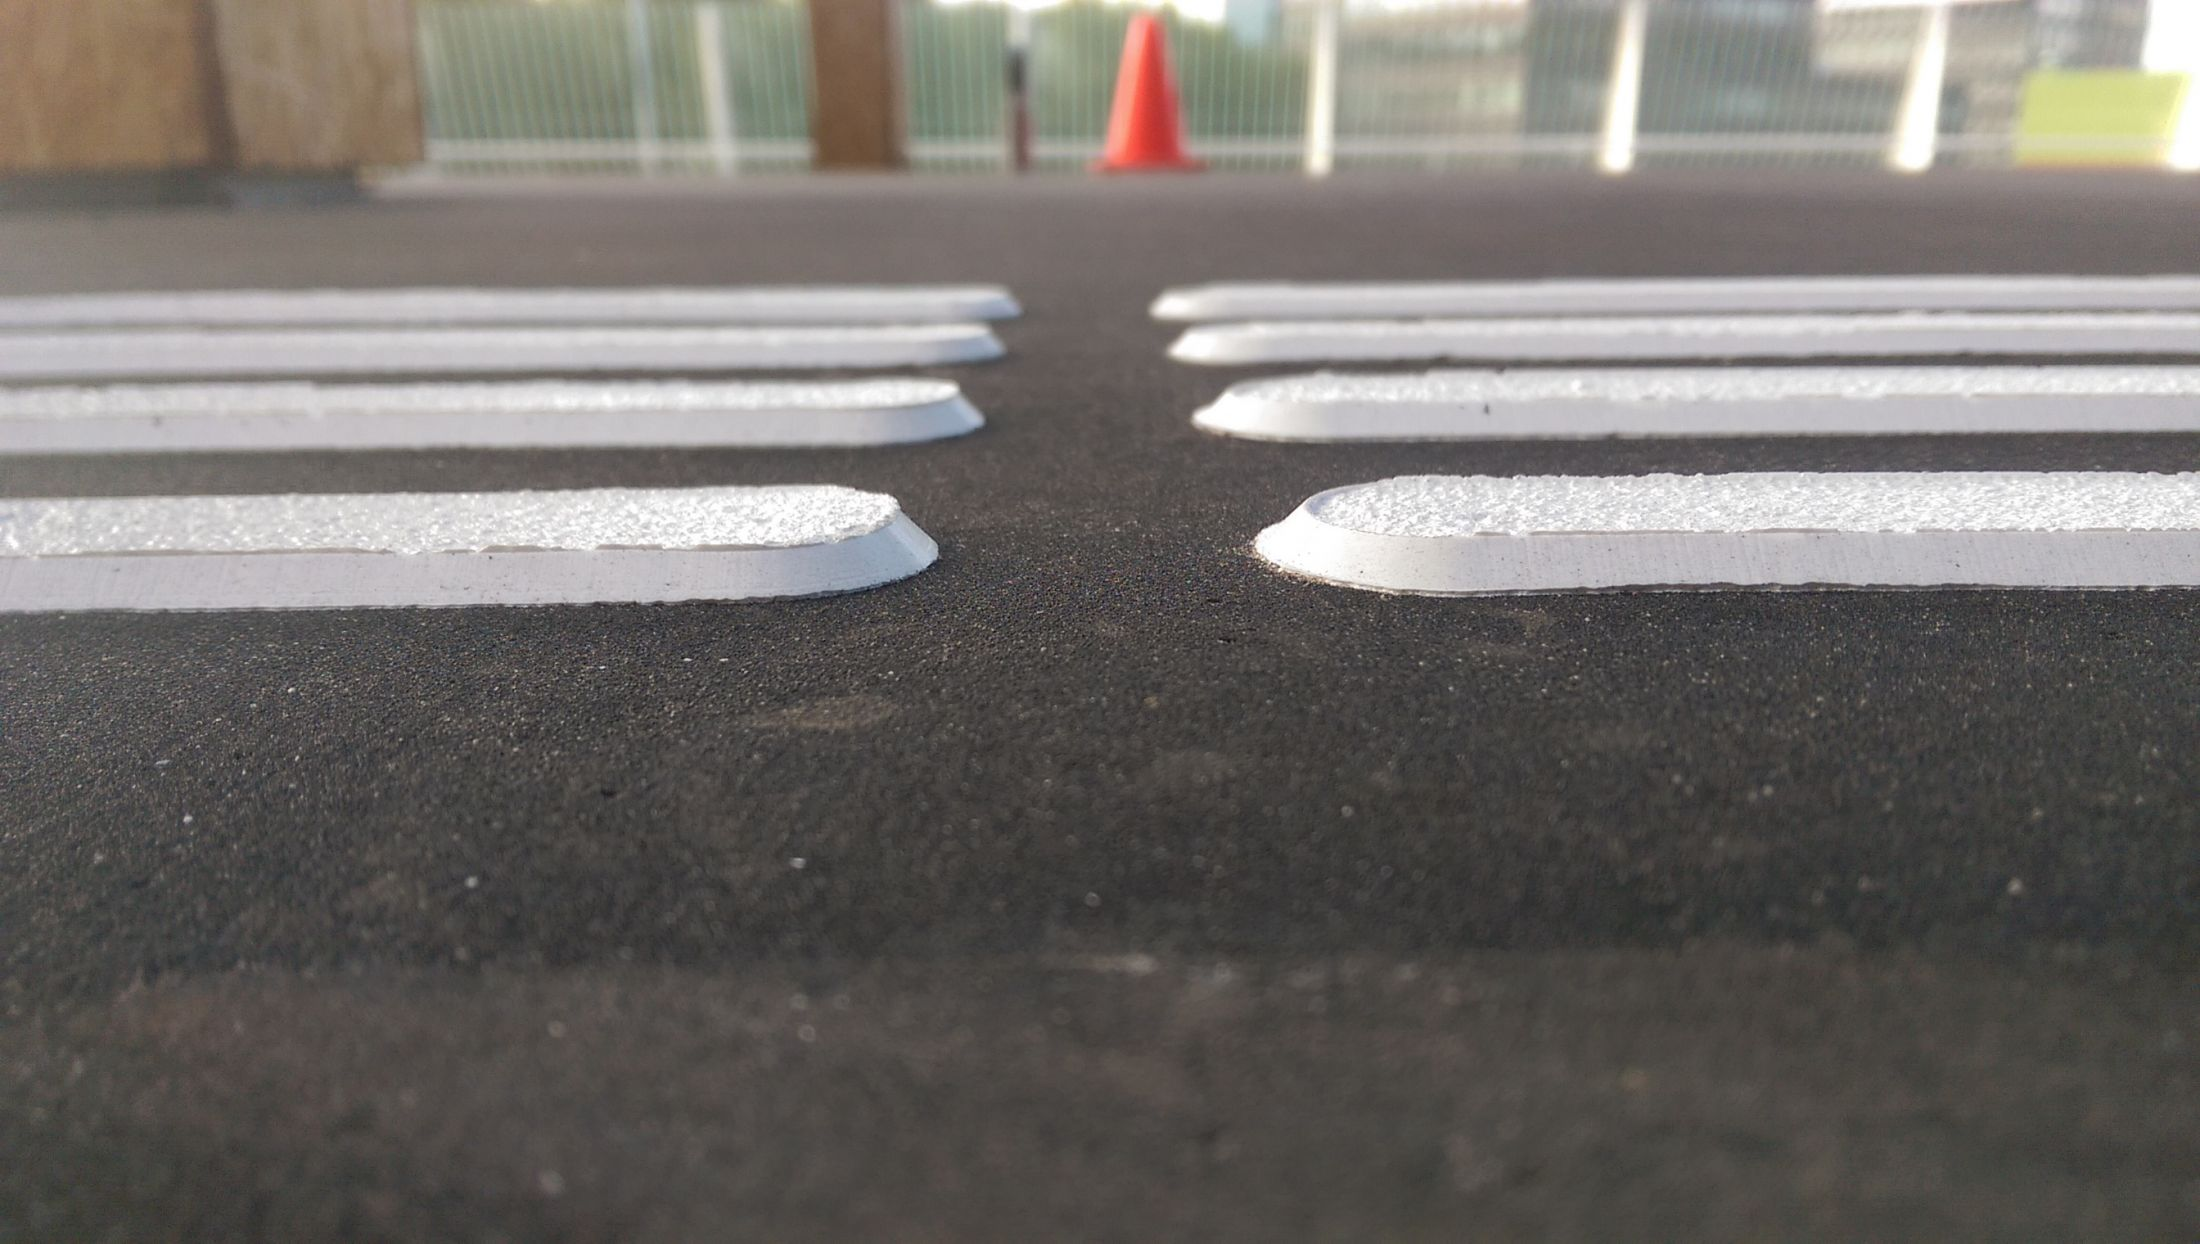 Tactile guiding ridges train <br> installed in situ